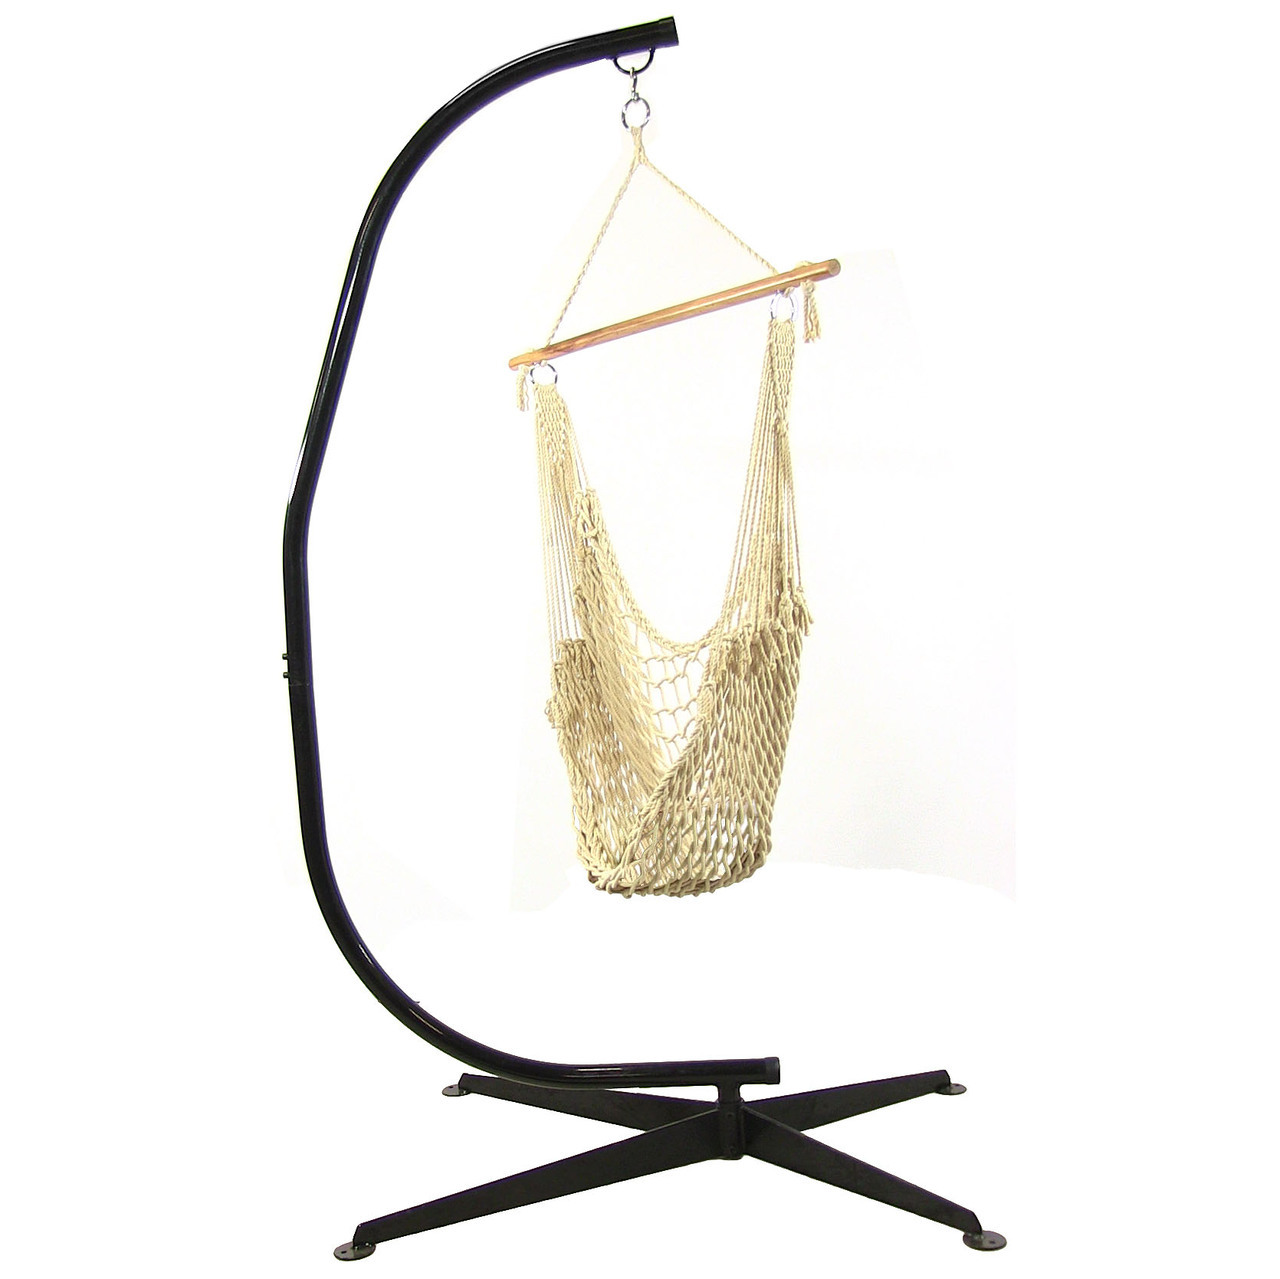 hammock chair c stand sports bean bag chairs sunnydaze cotton rope w spreader bar and